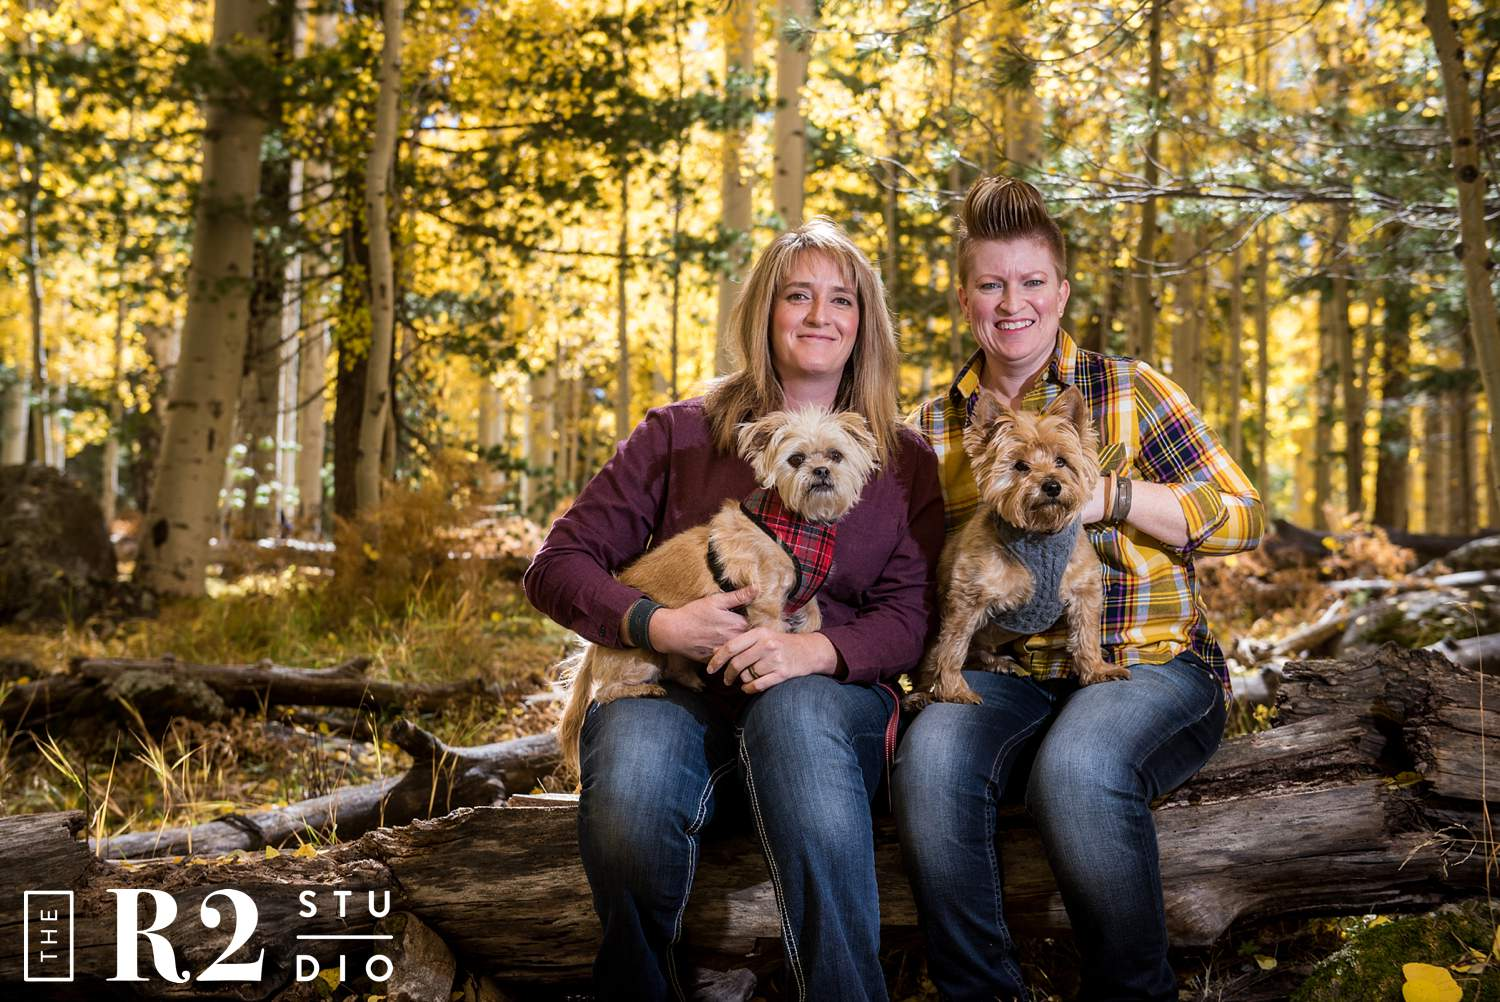 004-DK-flagstaff-fall-family-photos-2017ther2studio (5)